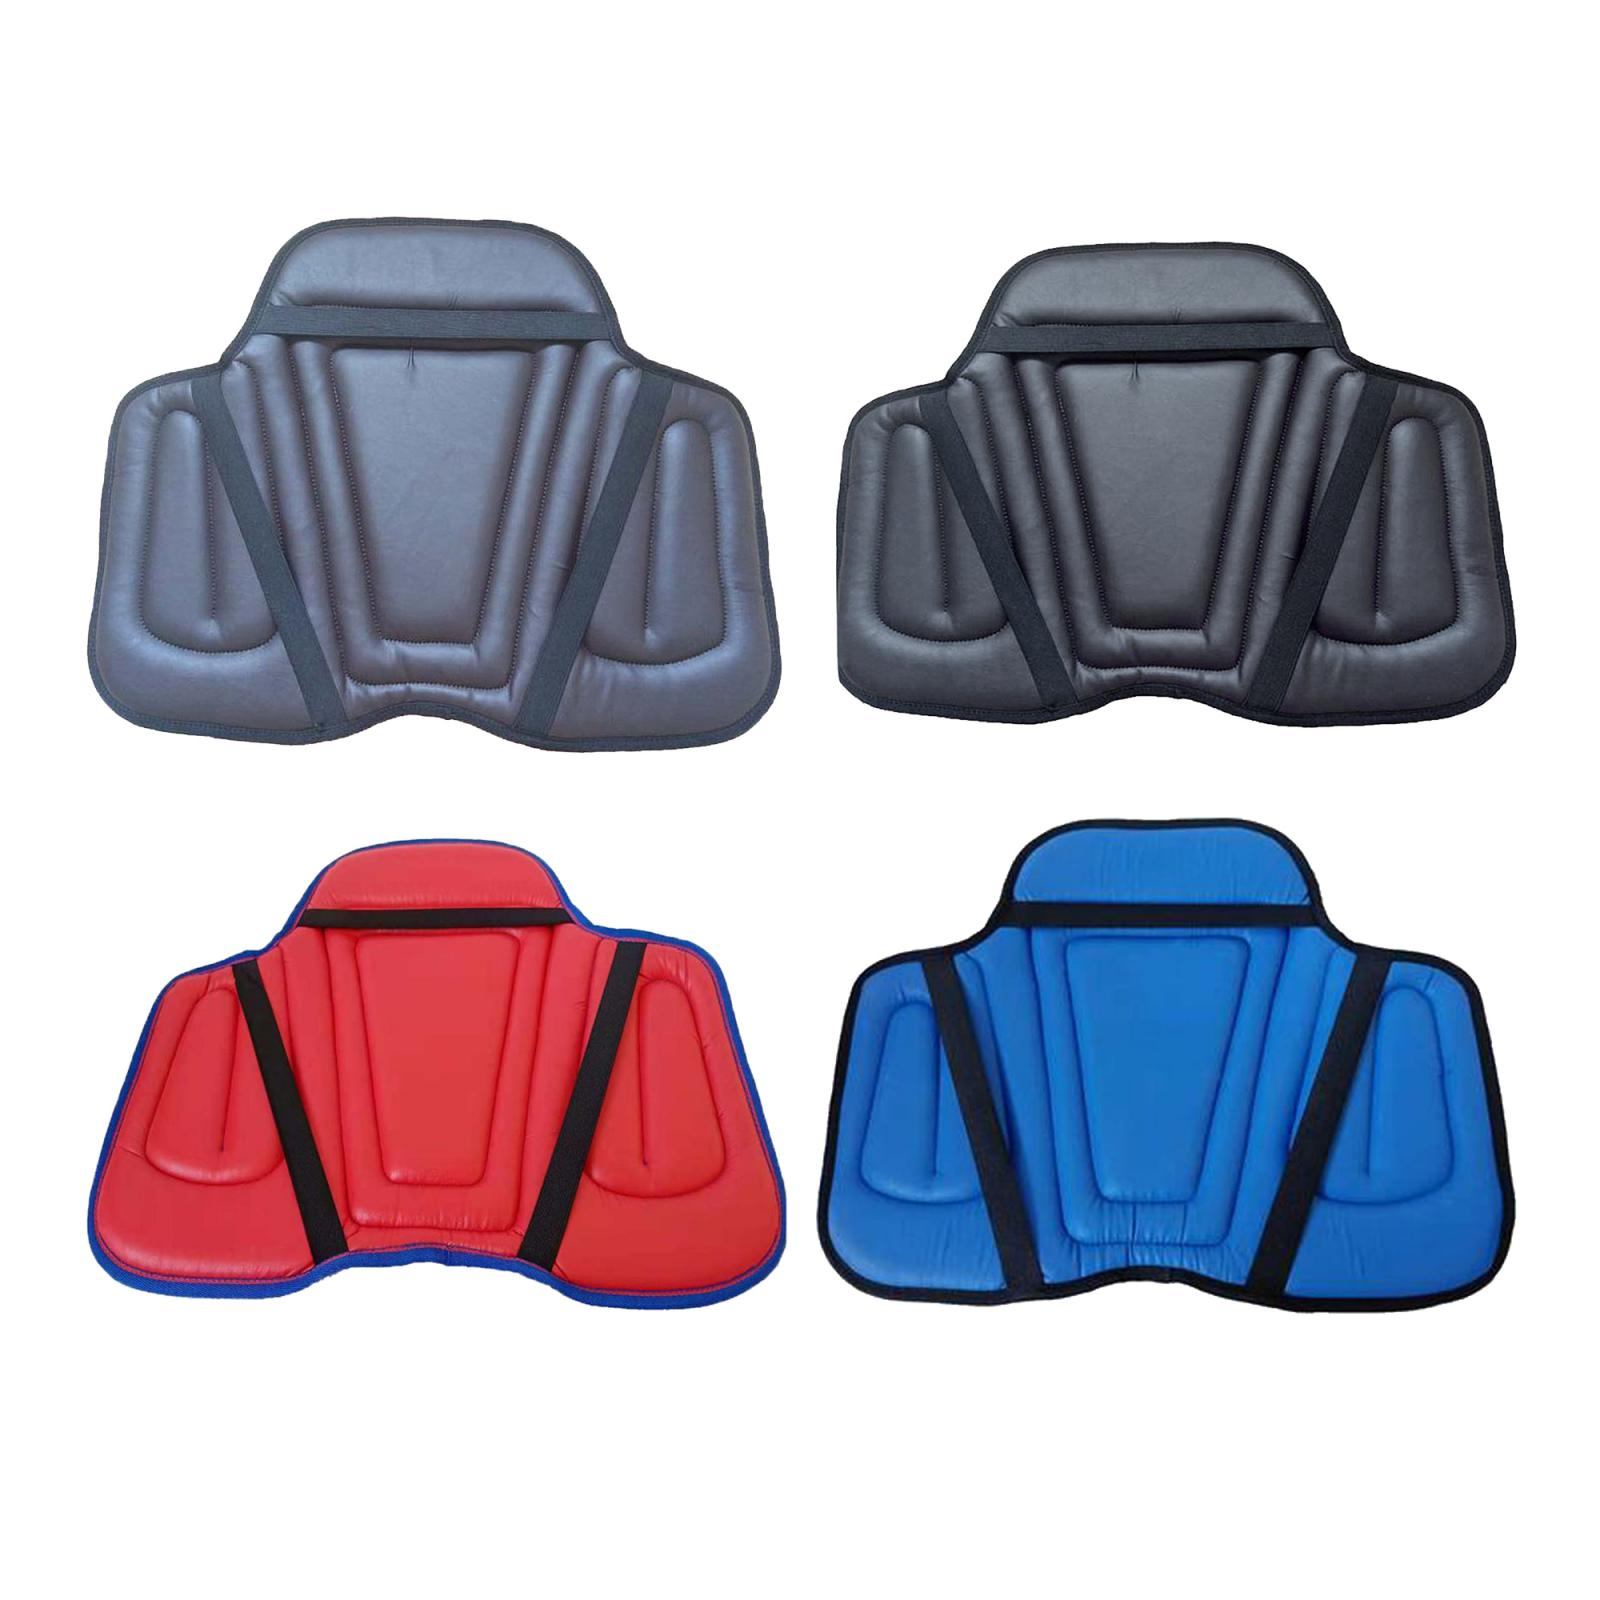 Equestrian Saddle Horse Saddle Pad Accessories Sponge Harness Thick